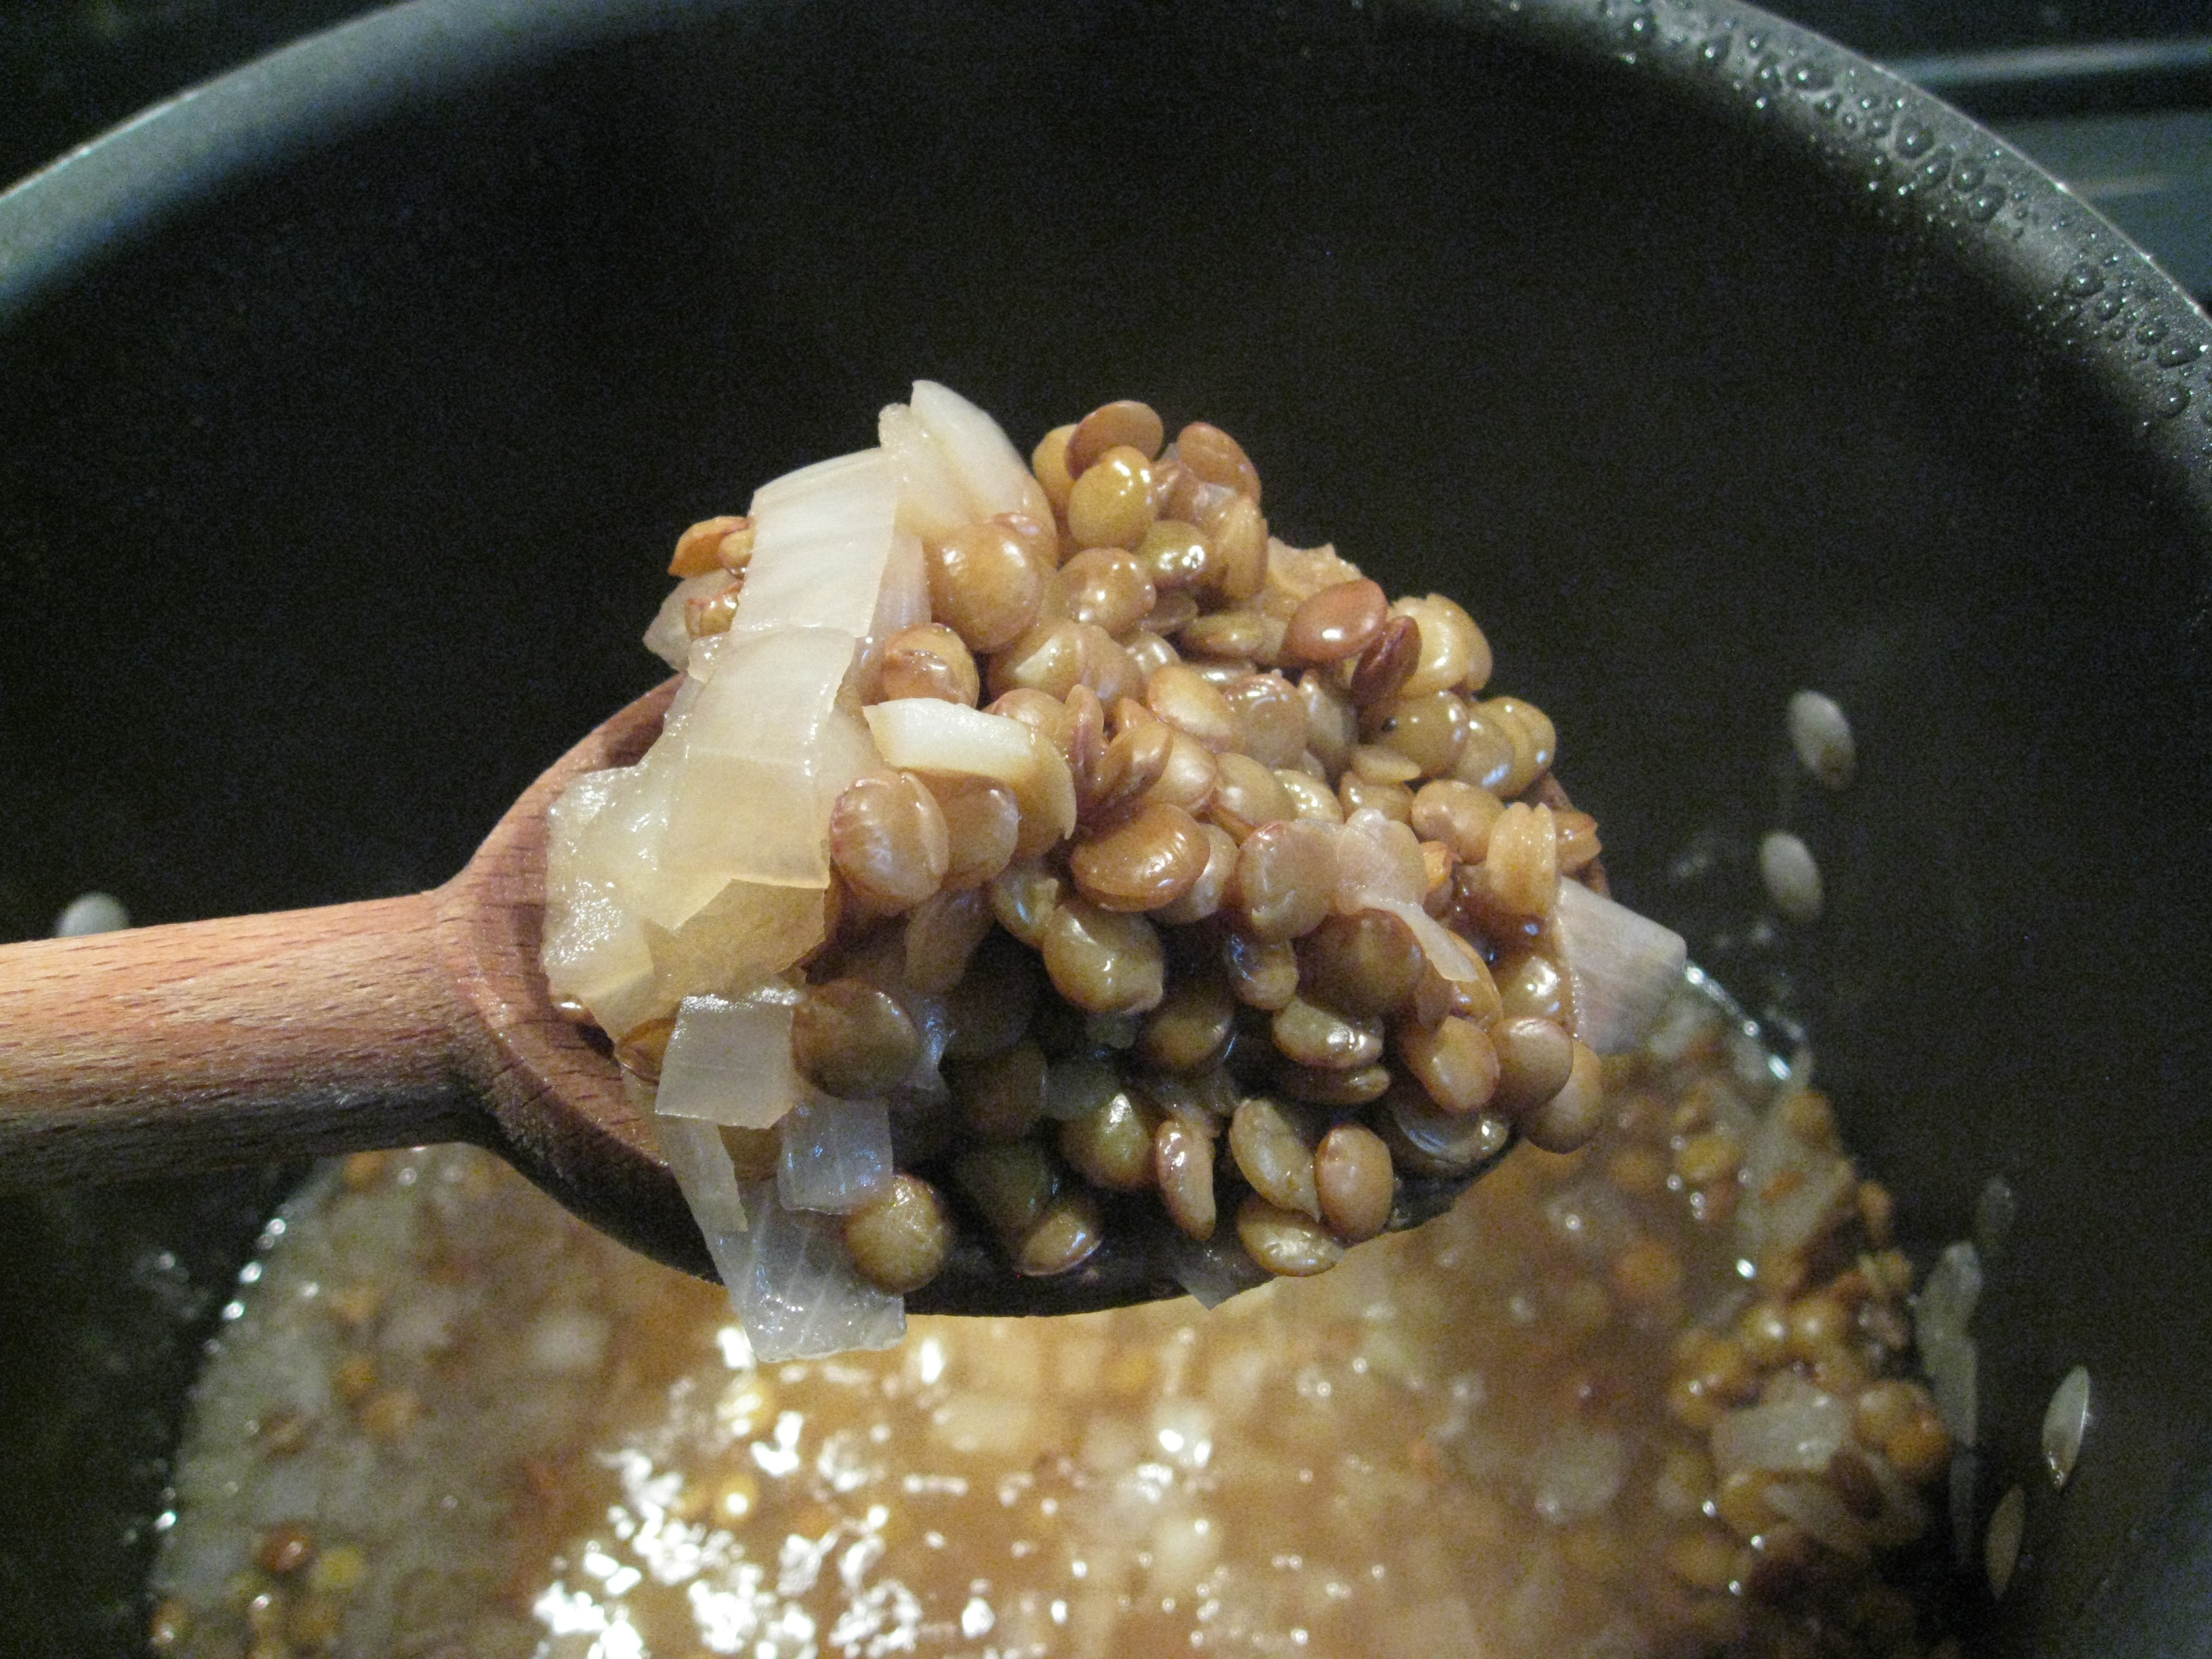 Lentils and onions cooked in about 30 minutes